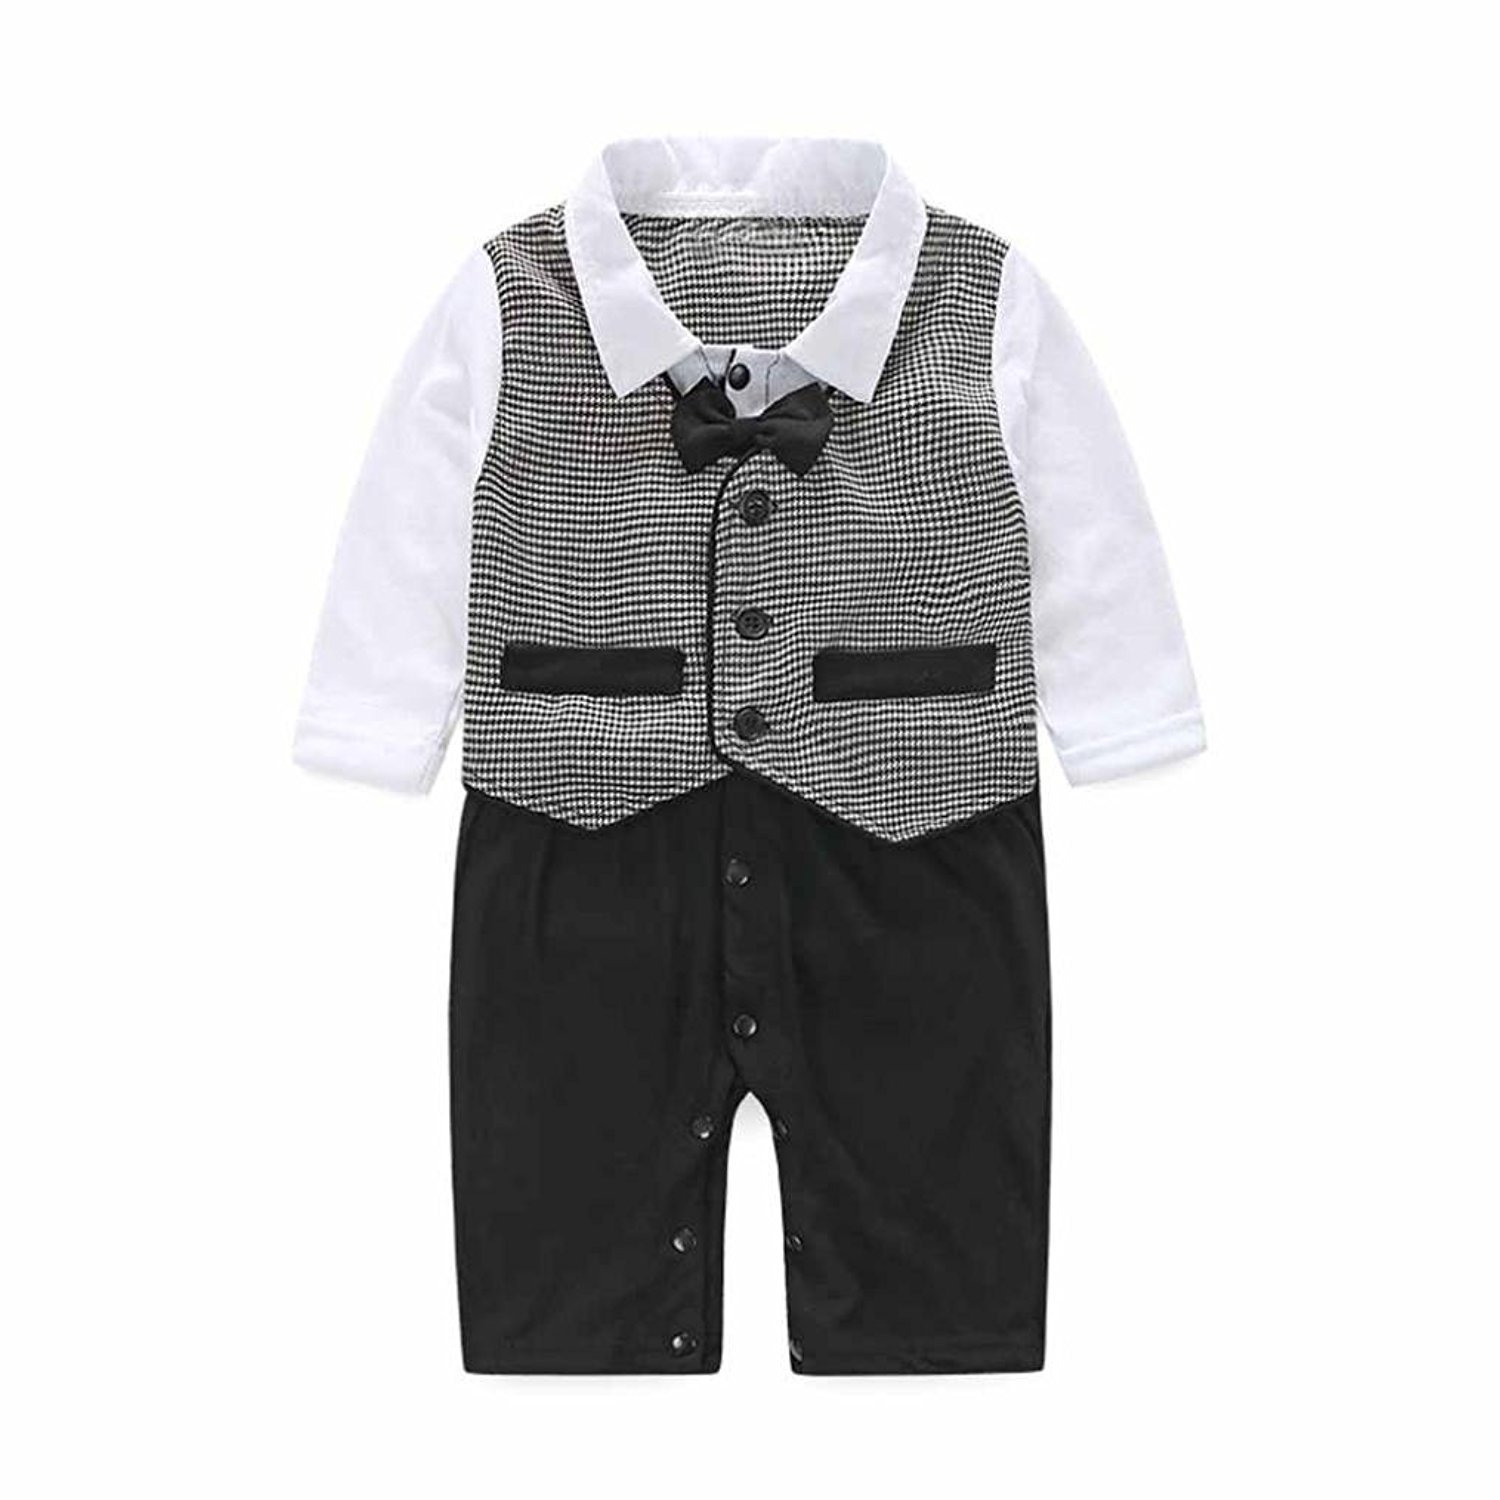 Kingko 0-24Months Baby Boy Formal Party Christening Wedding Tuxedo Waistcoat Bow Tie Suit